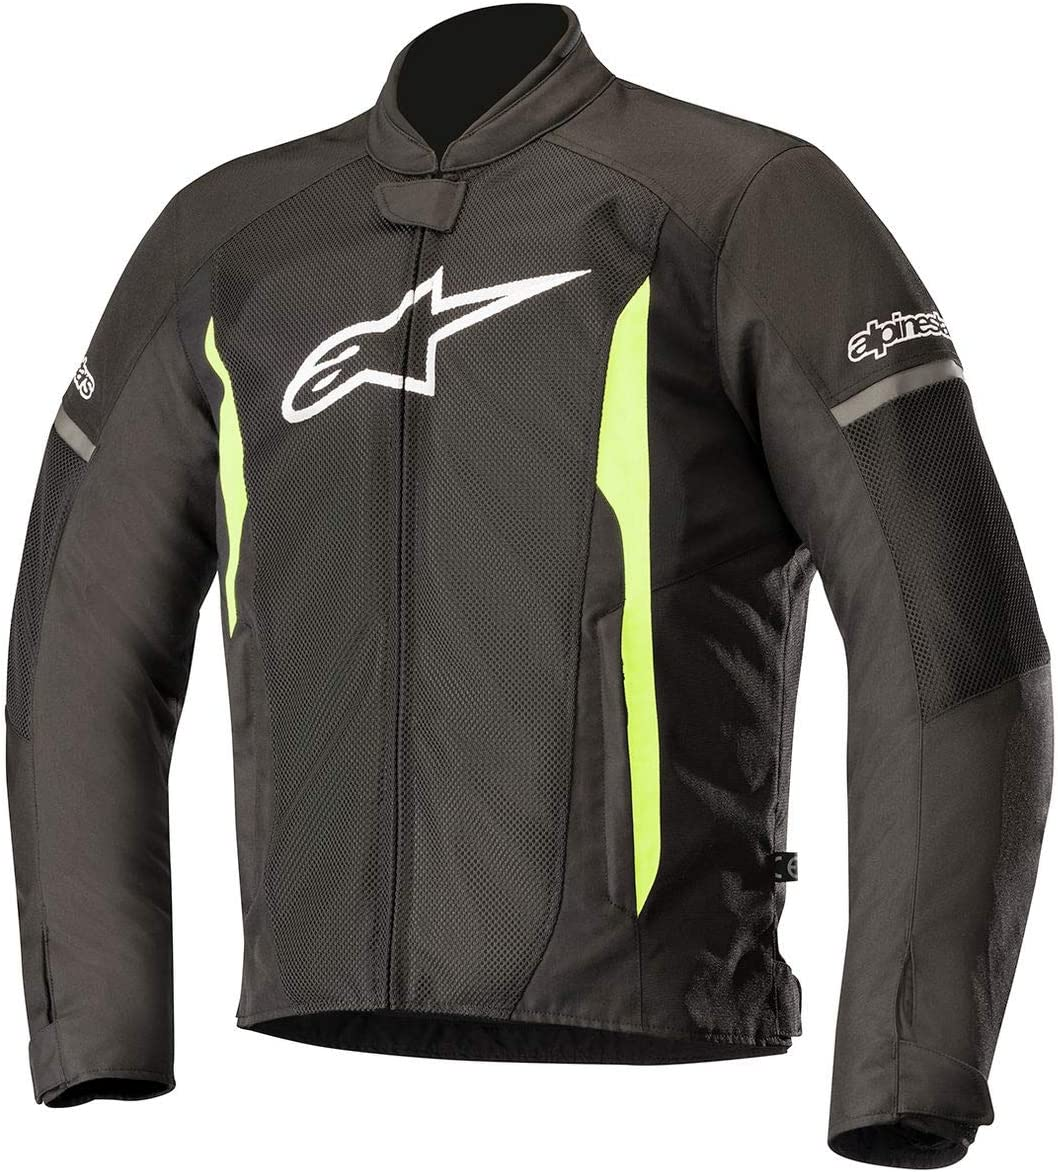 Alpinestars Men's T-Faster Air Motorcycle Jacket, Black/Yellow, Medium